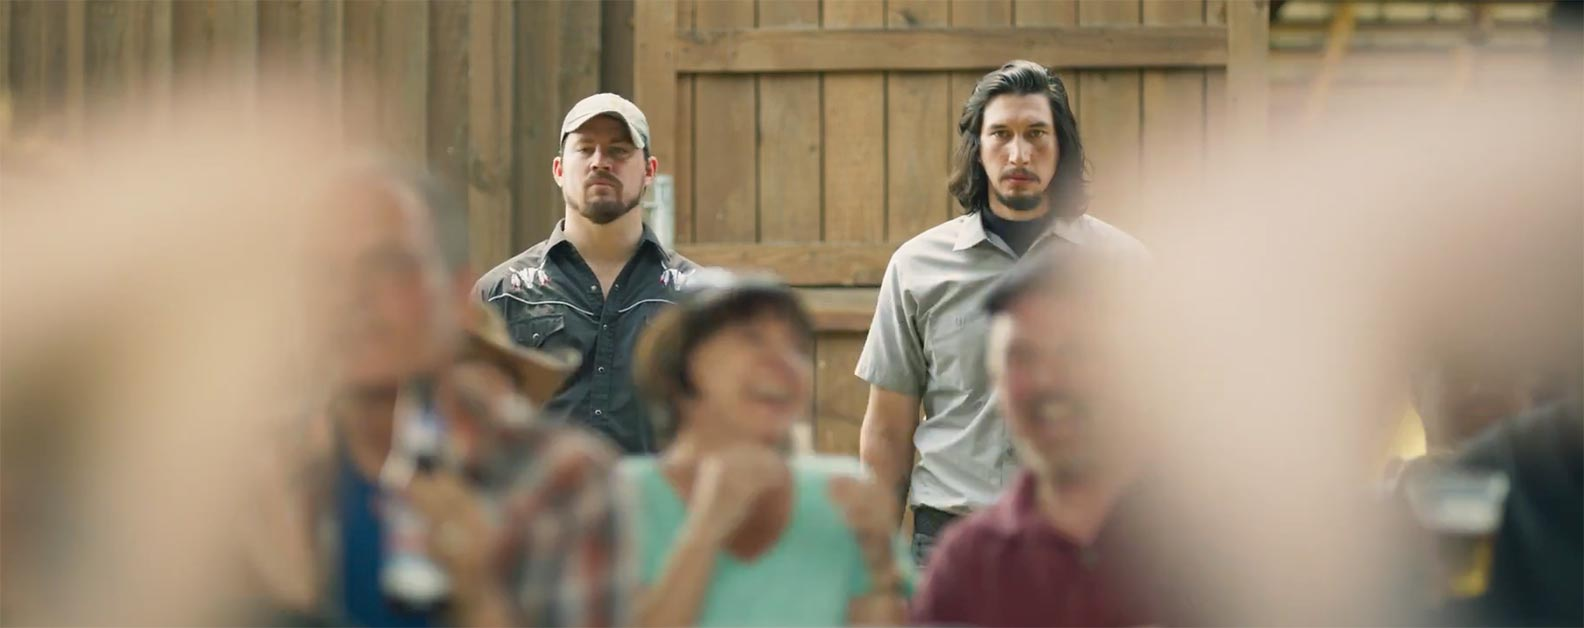 Logan Lucky Trailer Screencap